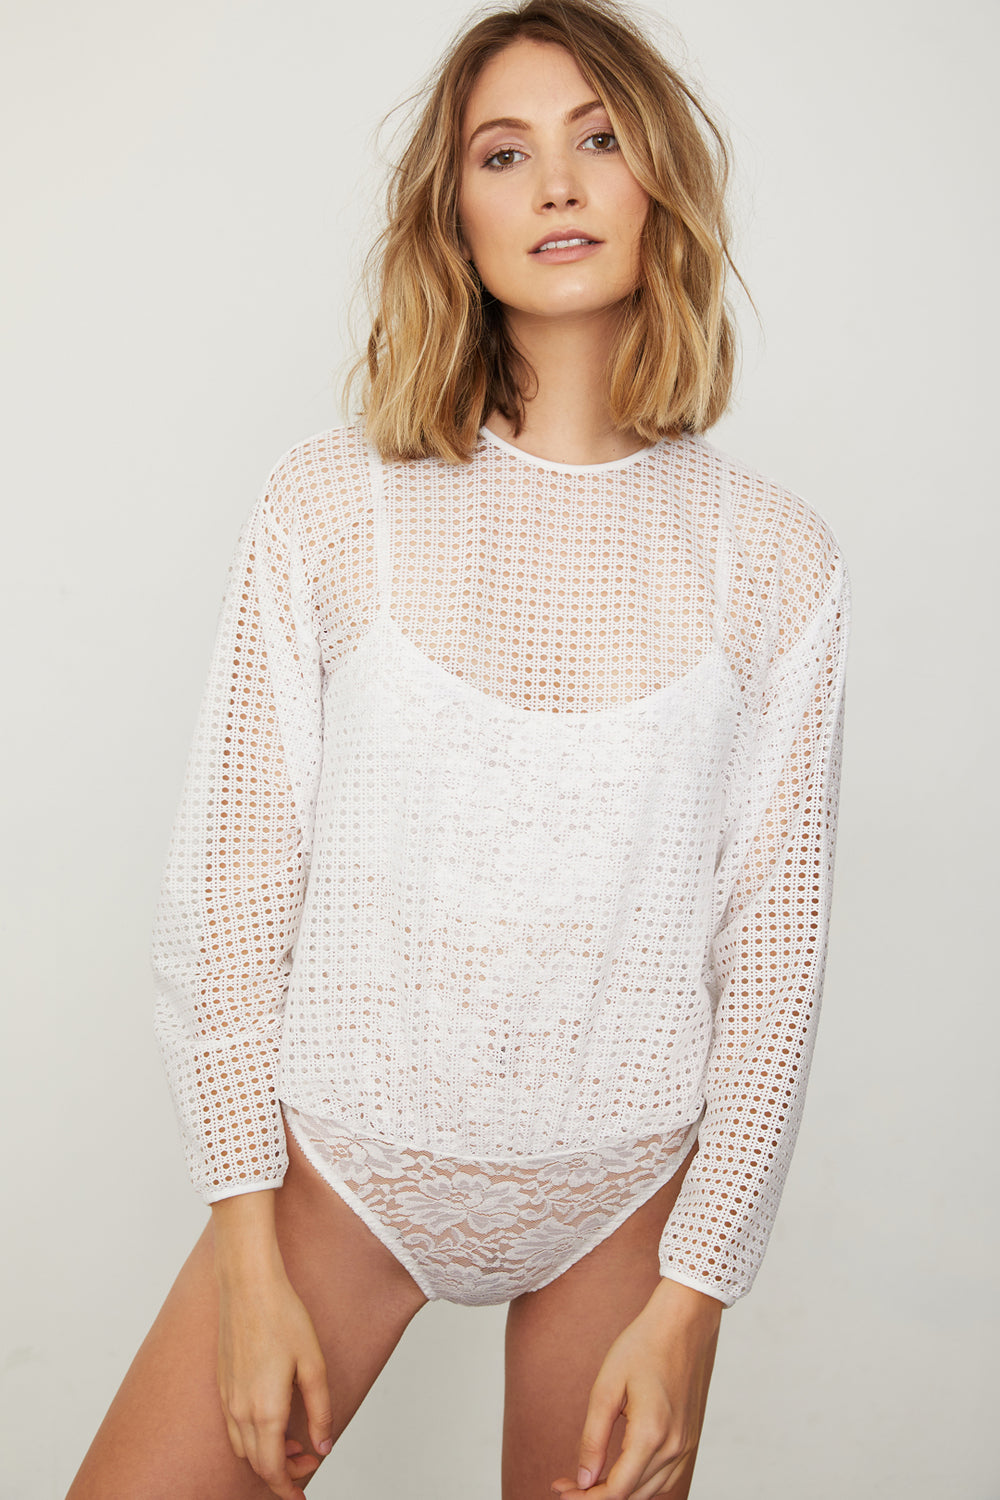 white mesh dotted bodysuit blouse with lace underlay machine washable